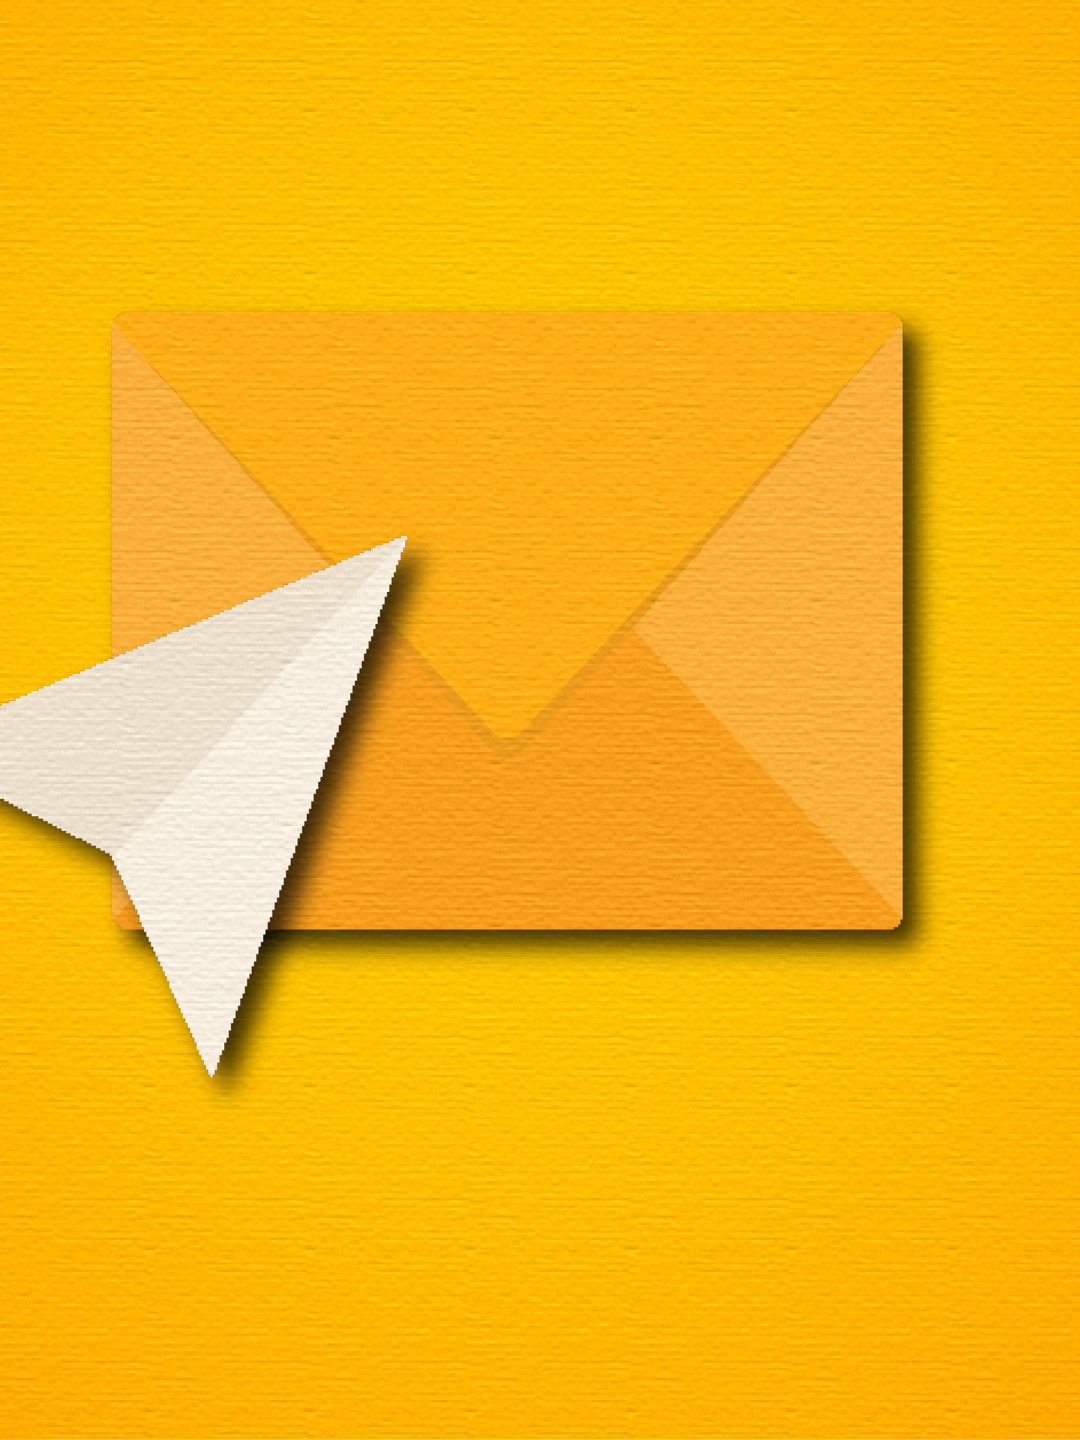 How to improve the Click-through-rate and pass the spam filter in your Email Marketing campaign?